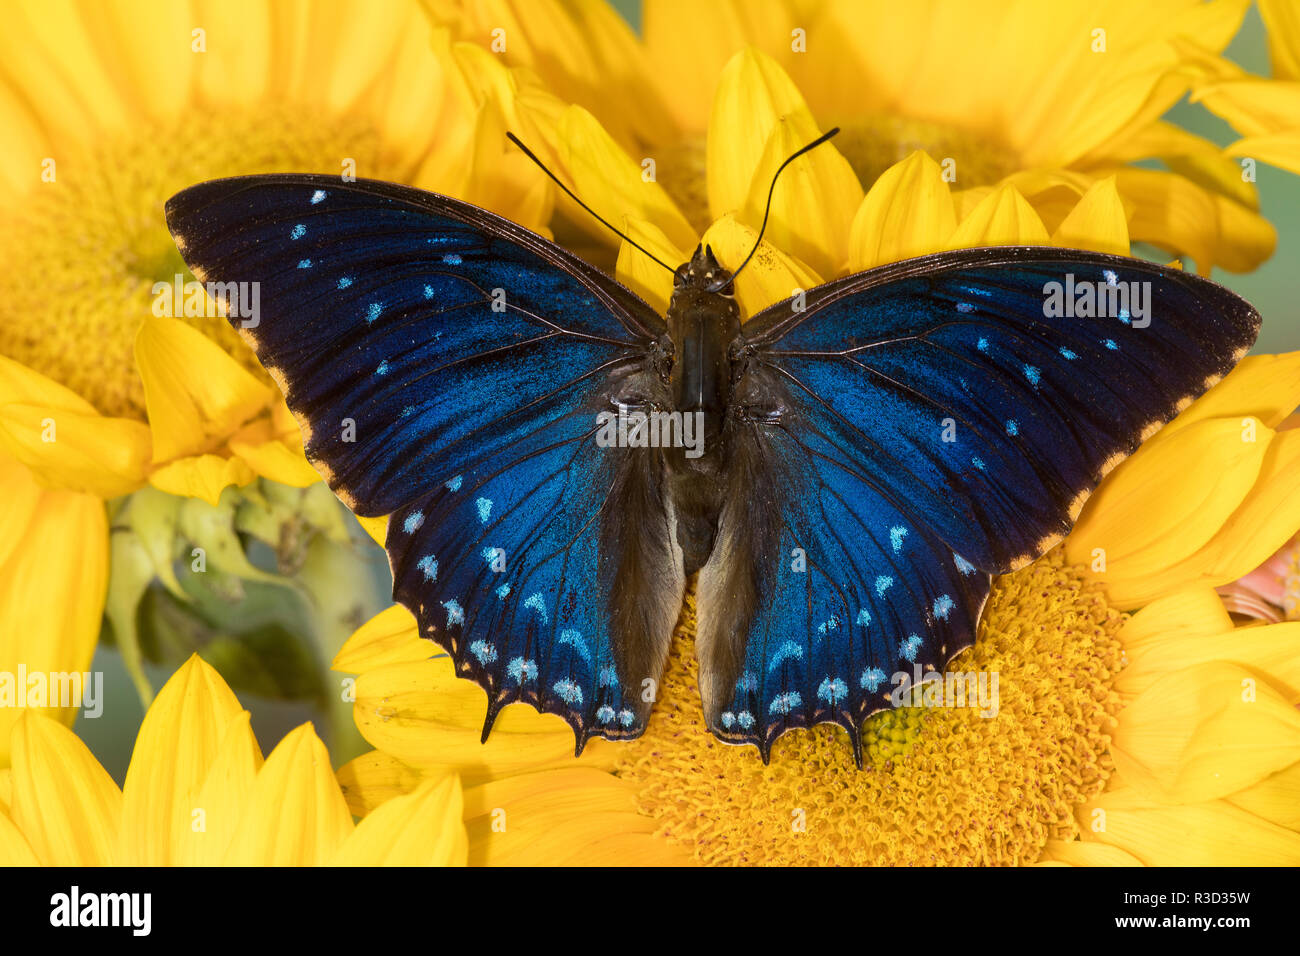 Charaxes a brush-footed butterfly know as emperors on sunflowers - Stock Image